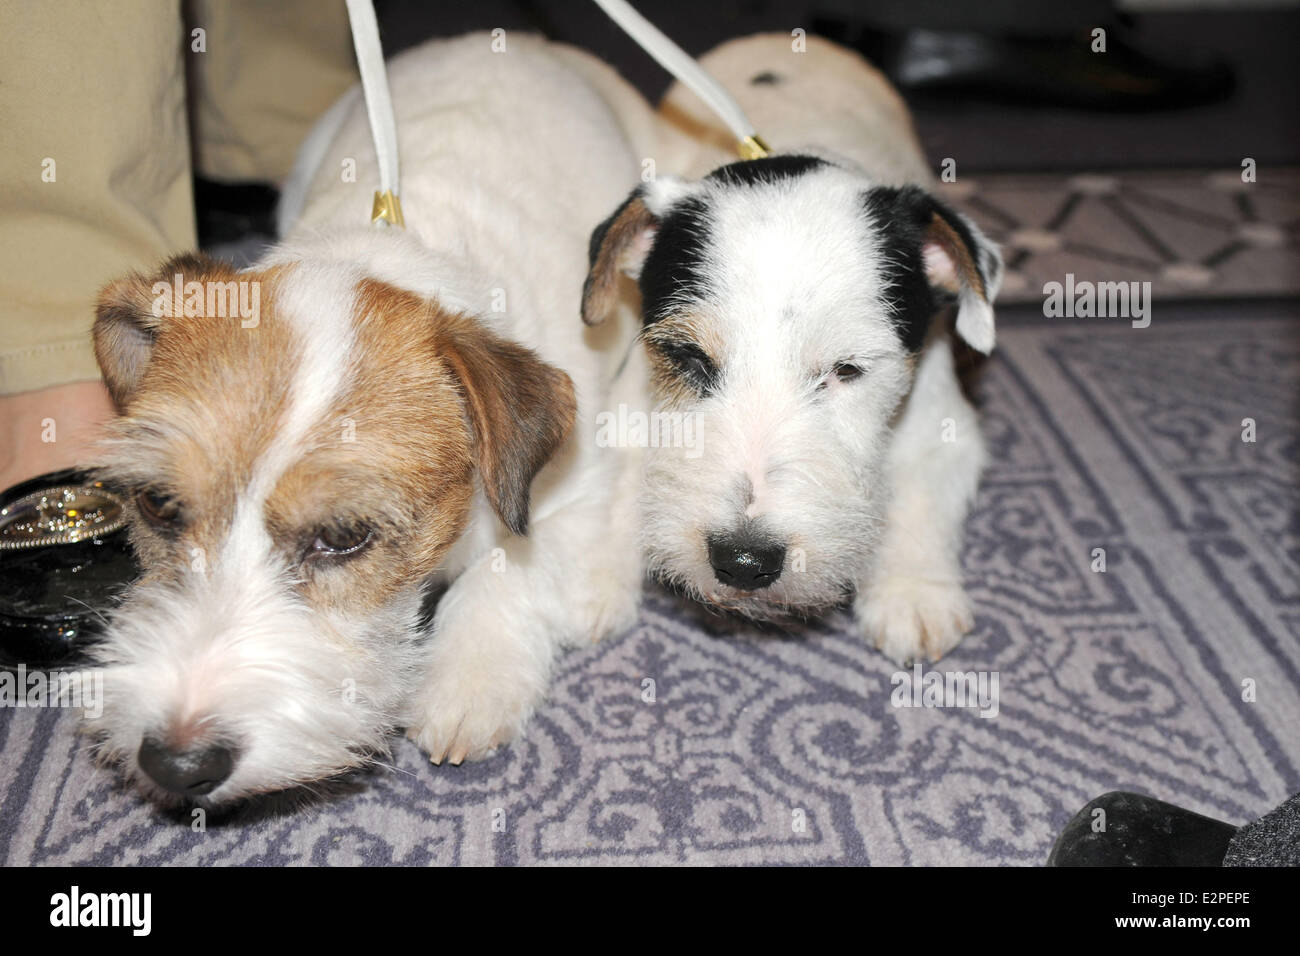 The Westminster Kennel Club 137th Annual Dog Show - Press Conference at Affinia  Featuring: Legs,Turbo both Russell Stock Photo